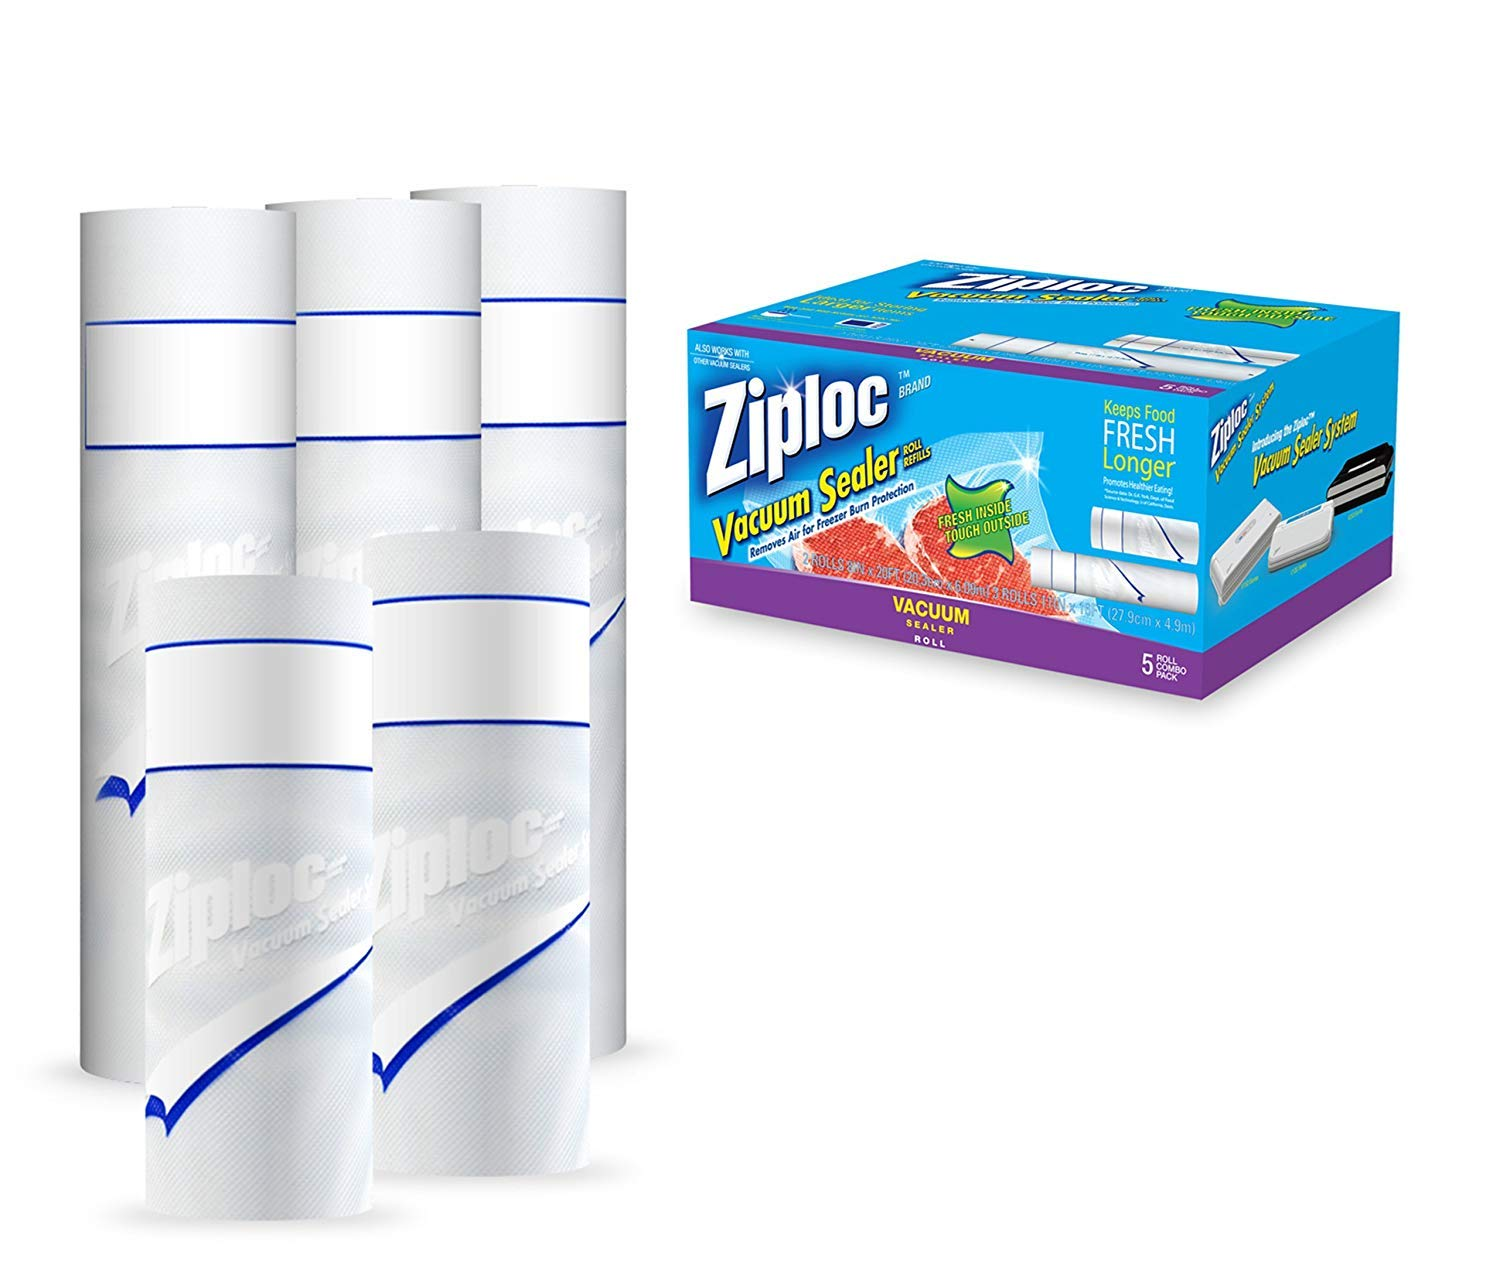 Ziploc ZL1COMBOPK3 Vacuum Seal Combo Pack with Two 8-Inch x 20-Feet Rolls and Three 11-Inch x 16-Feet Rolls (2-Units)